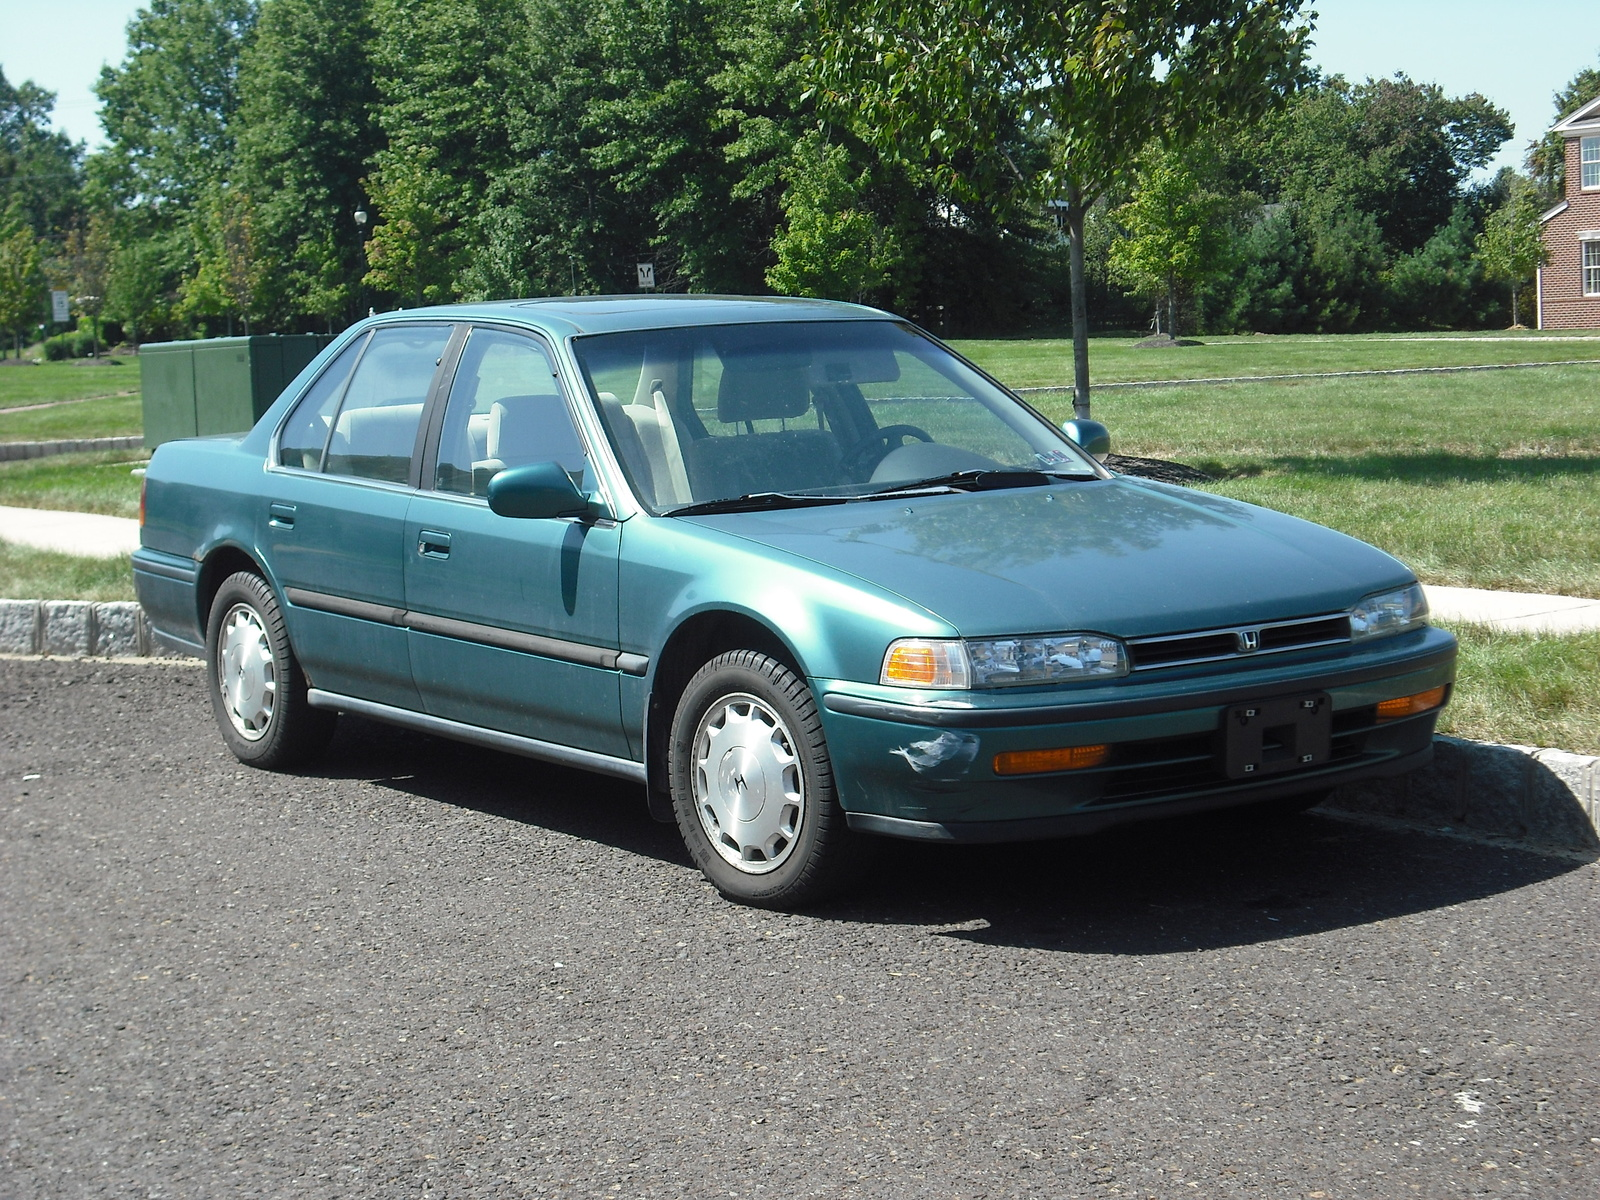 1993 Honda Accord Information And Photos Zombiedrive 1999 4 Door 17